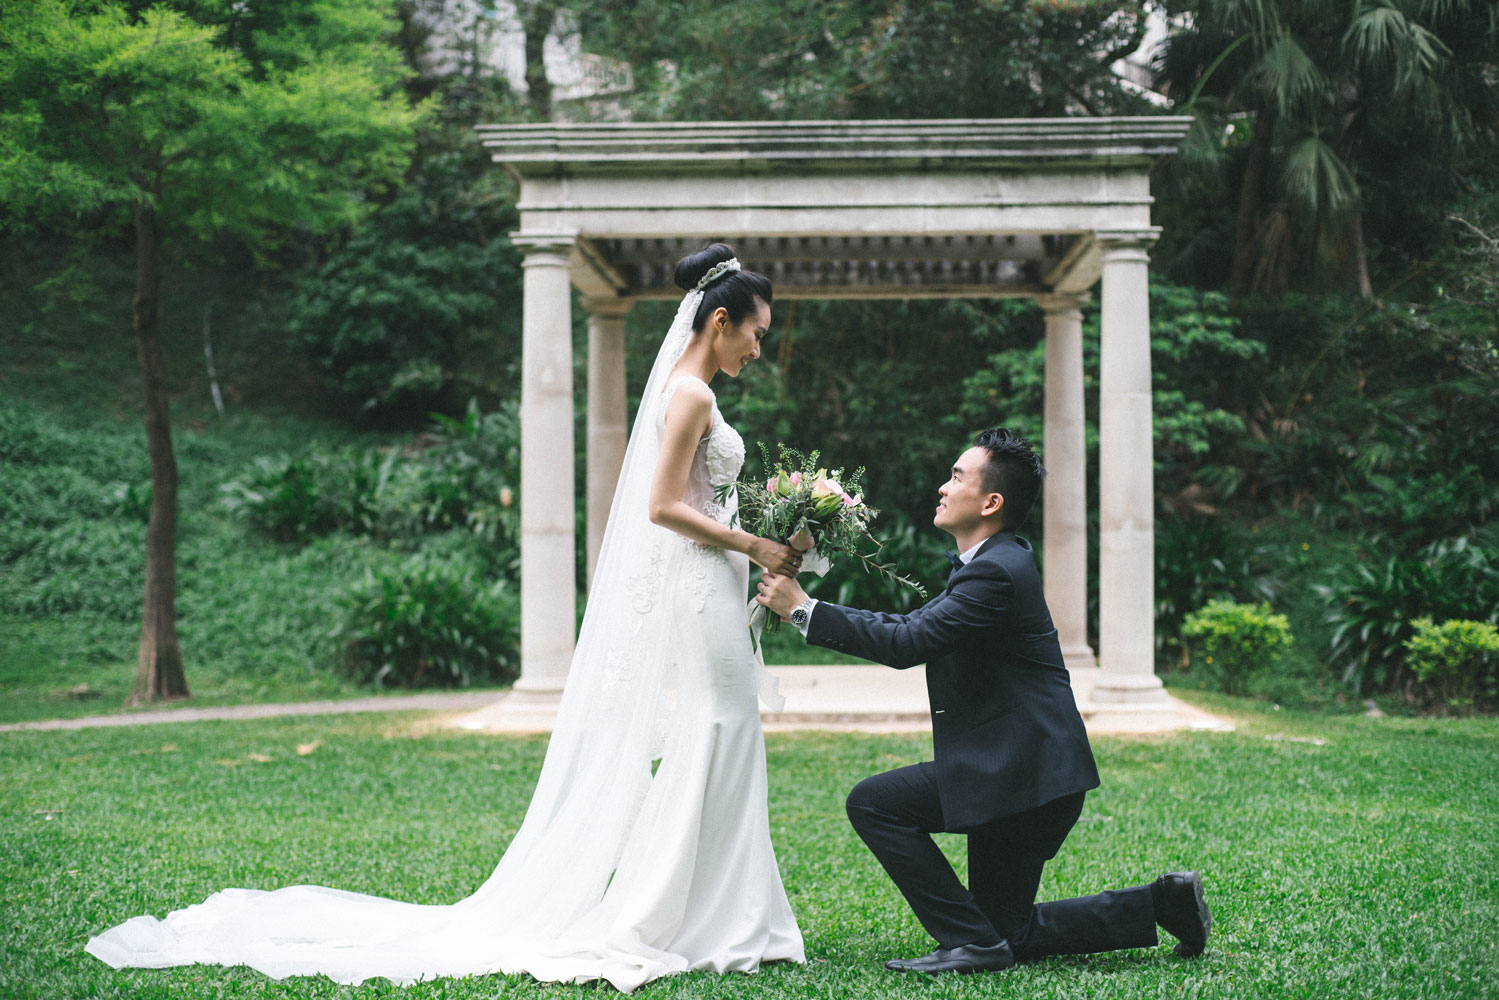 Filipino Wedding Traditions.Five Things You Need To Know About Chinese Filipino Weddings Calyxta